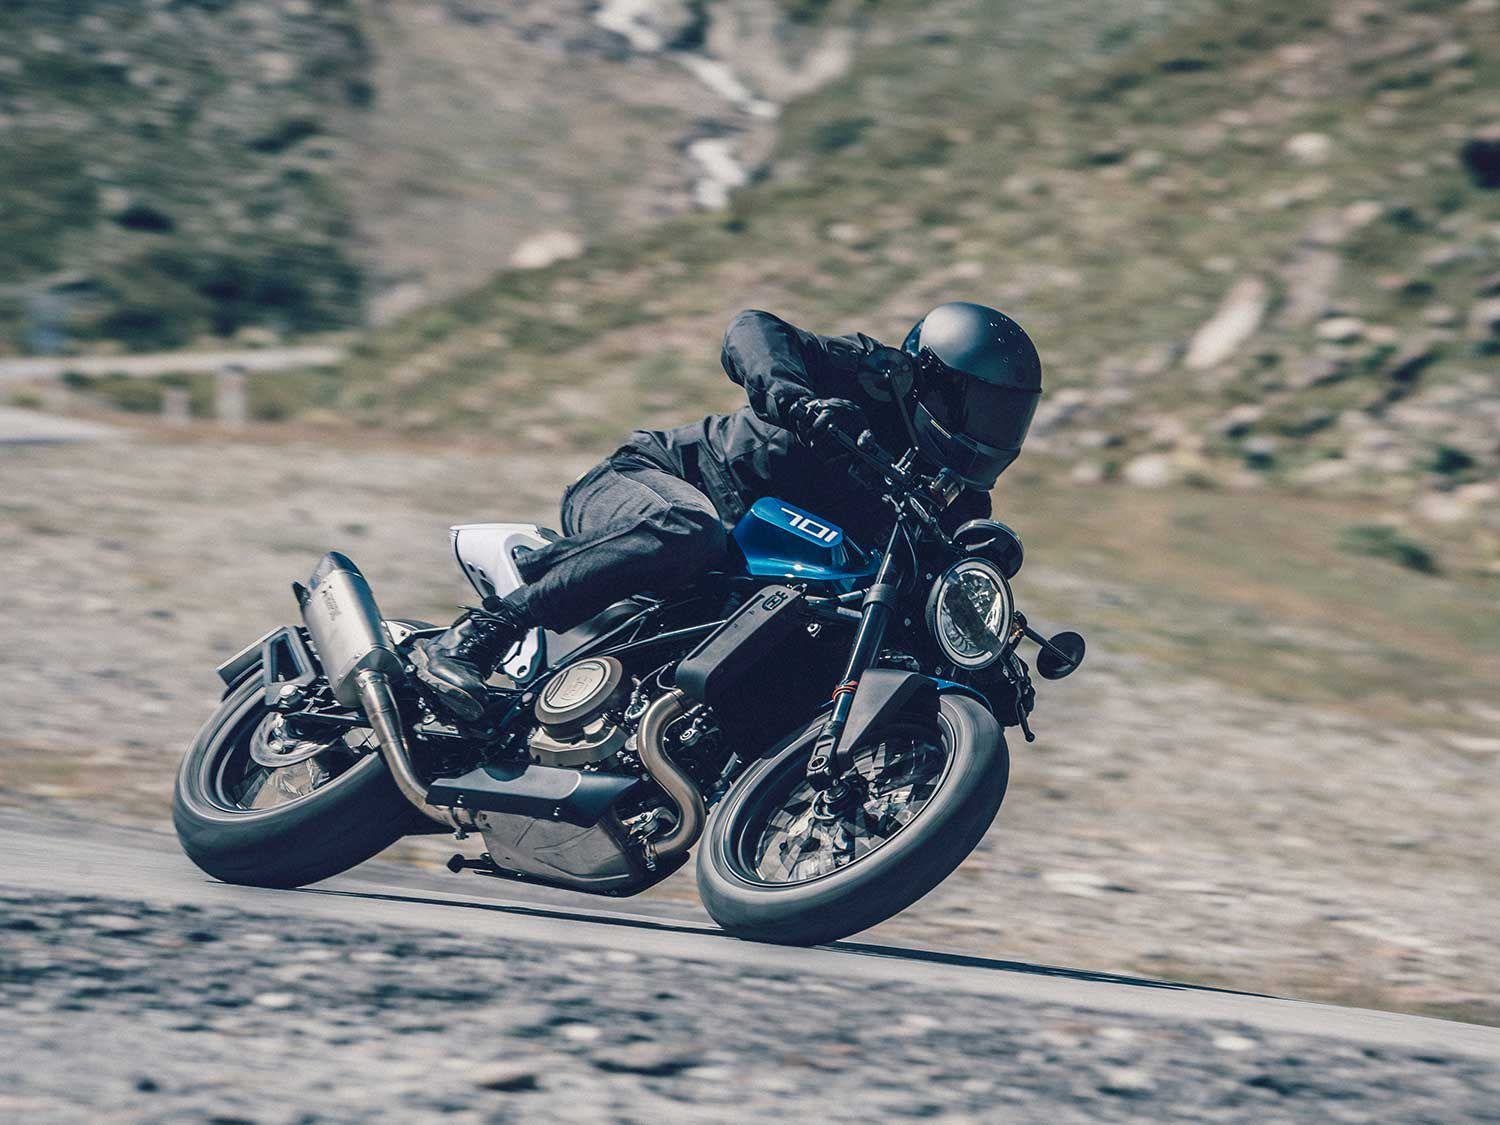 The Vitpilen 701 has helped Husqvarna find success in the on-road market.